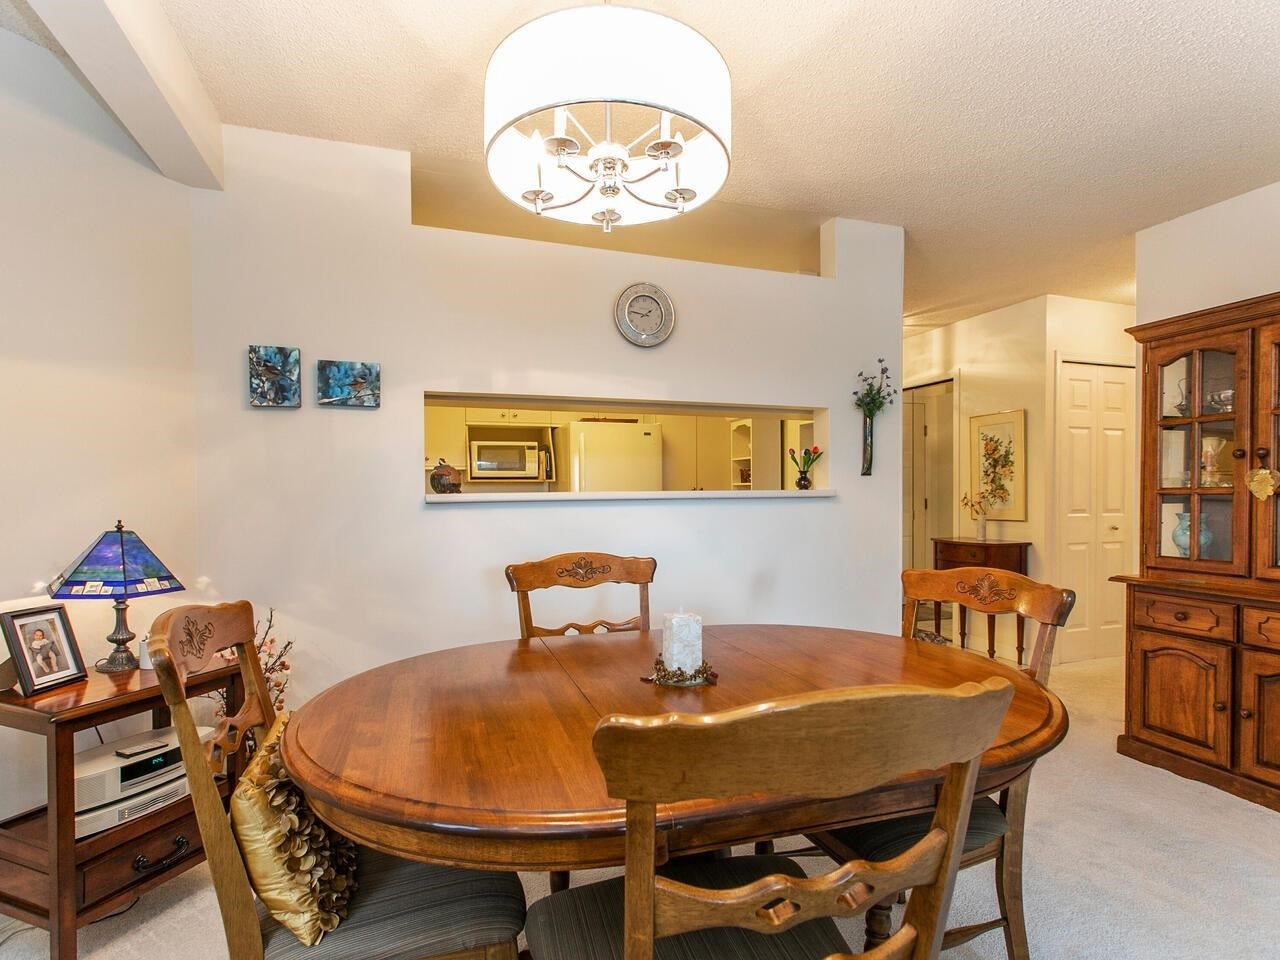 104 2800 CHESTERFIELD AVENUE - Upper Lonsdale Apartment/Condo for sale, 2 Bedrooms (R2603260) - #10